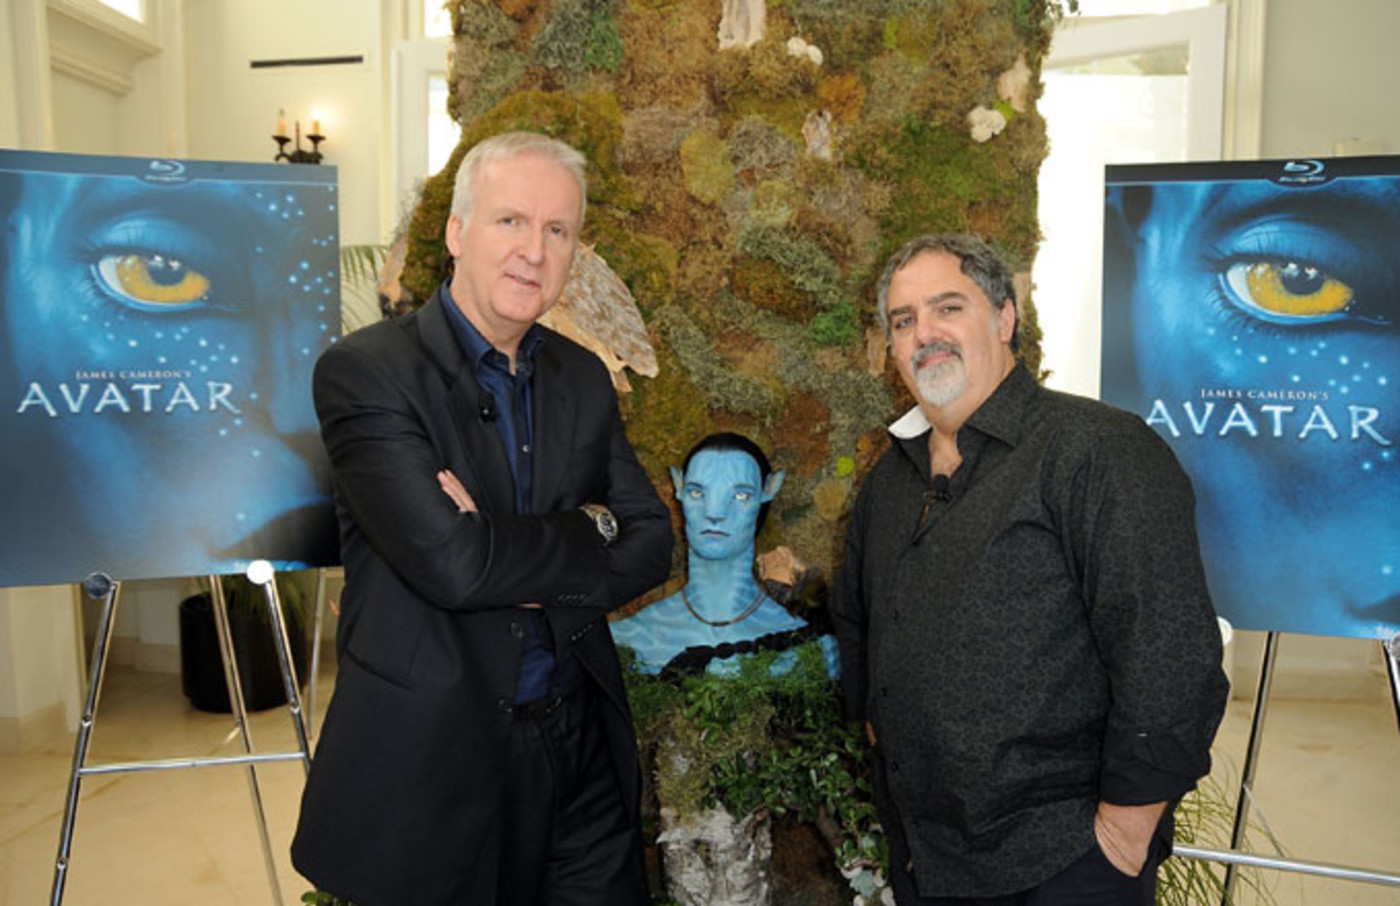 Avatar director James Cameron with producer Jon Landau